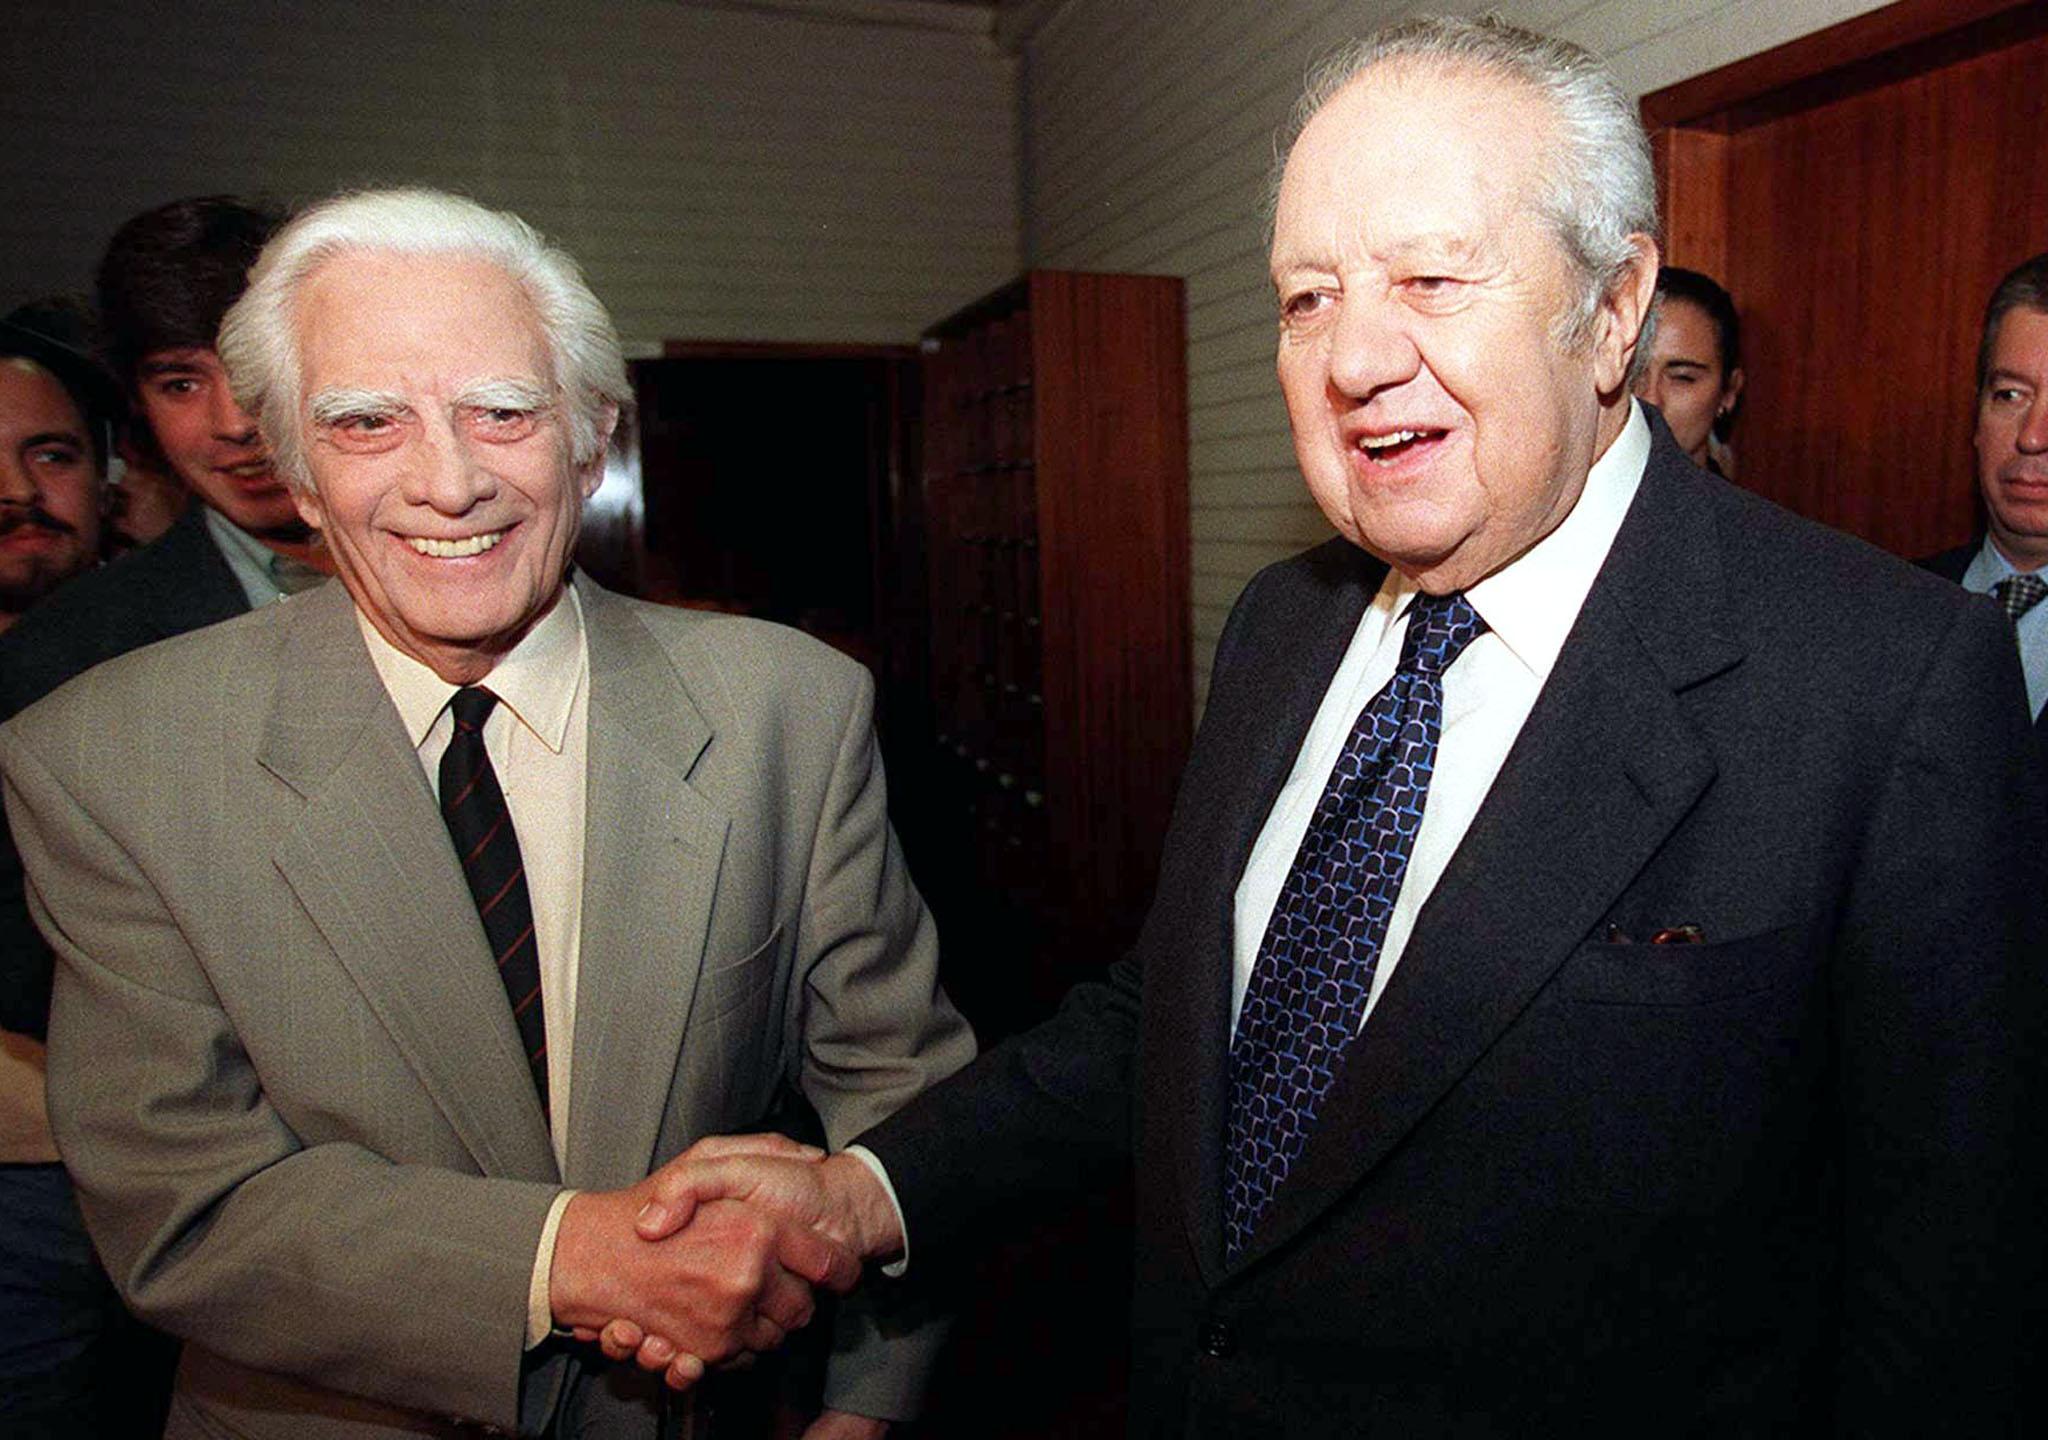 "LIS07: 19971106-LISBON,Portugal: Former Portuguese President Mario Soares (r) shake hands with portuguese ortodox communist leader Alvaro Cunhal , prior a forum about "" Portugal and next Milenium in Europe"". This is the first meeting between them"